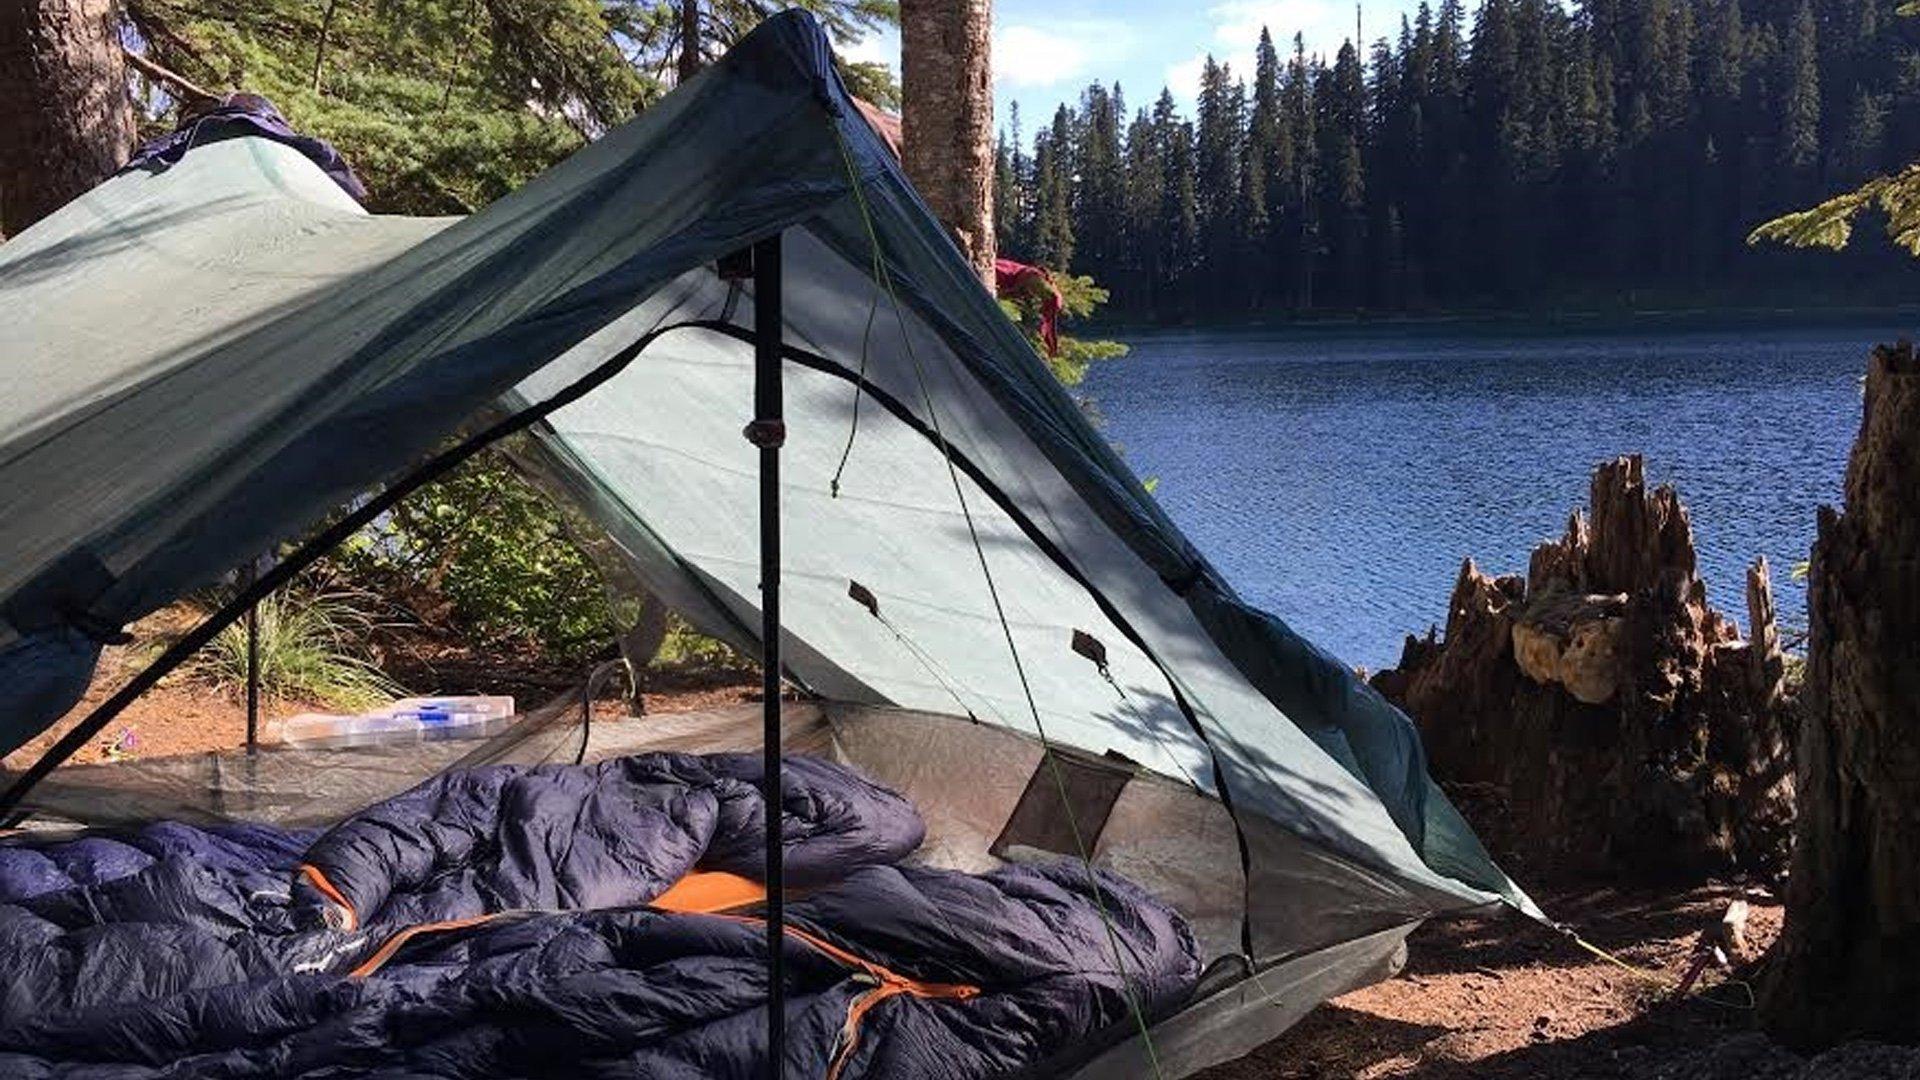 Gear: Our Shelter + Cooking/Hydration System